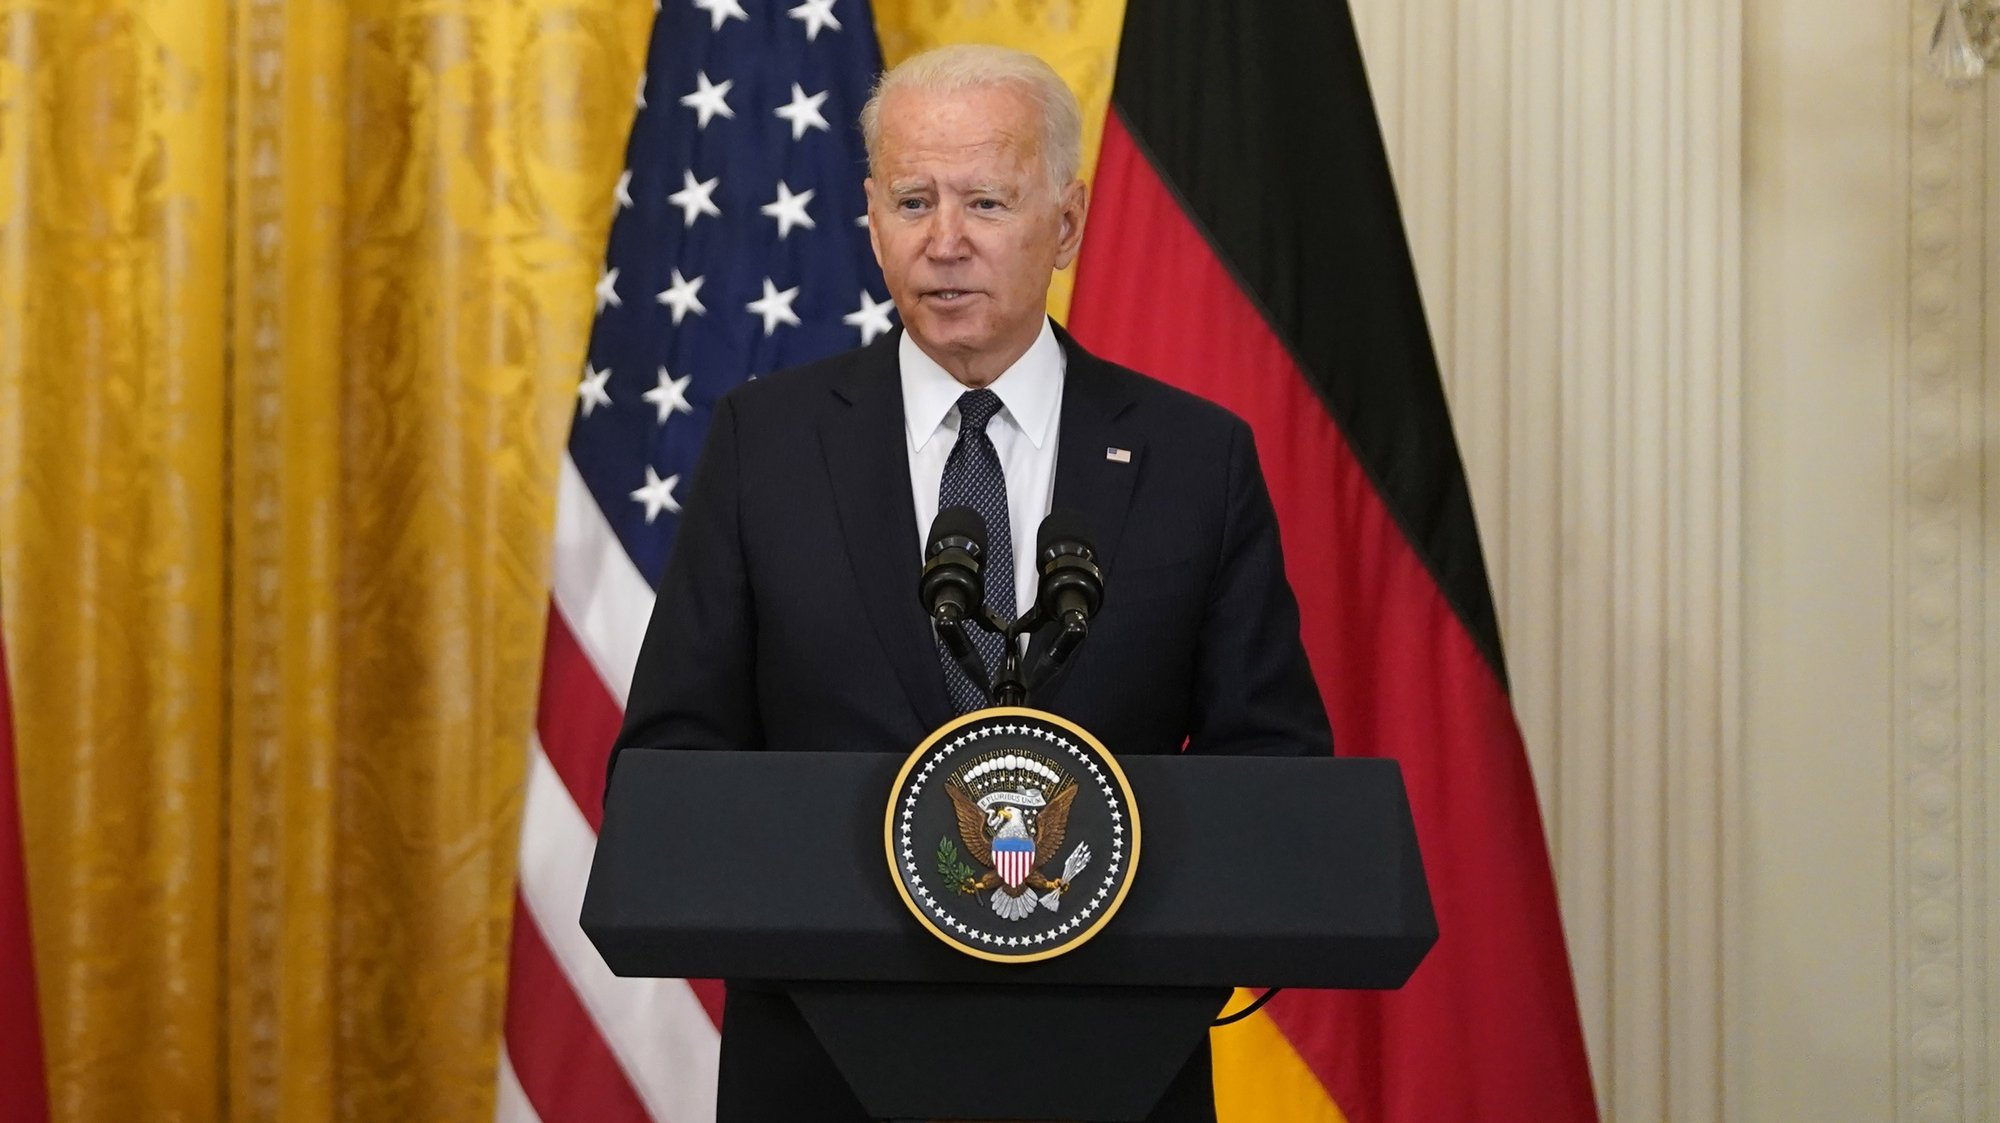 epa09347372 US President Joe Biden and German Chancellor Angela Merkel (Not Seen) participate in a joint press conference in the East Room of the White House in Washington, DC, USA, 15 July 2021. The two leaders met earlier to discuss the Russian Nord Stream 2 pipeline, climate change, Covid-19 vaccines, and Russian cyber attacks.  EPA/Alex Edelman / POOL